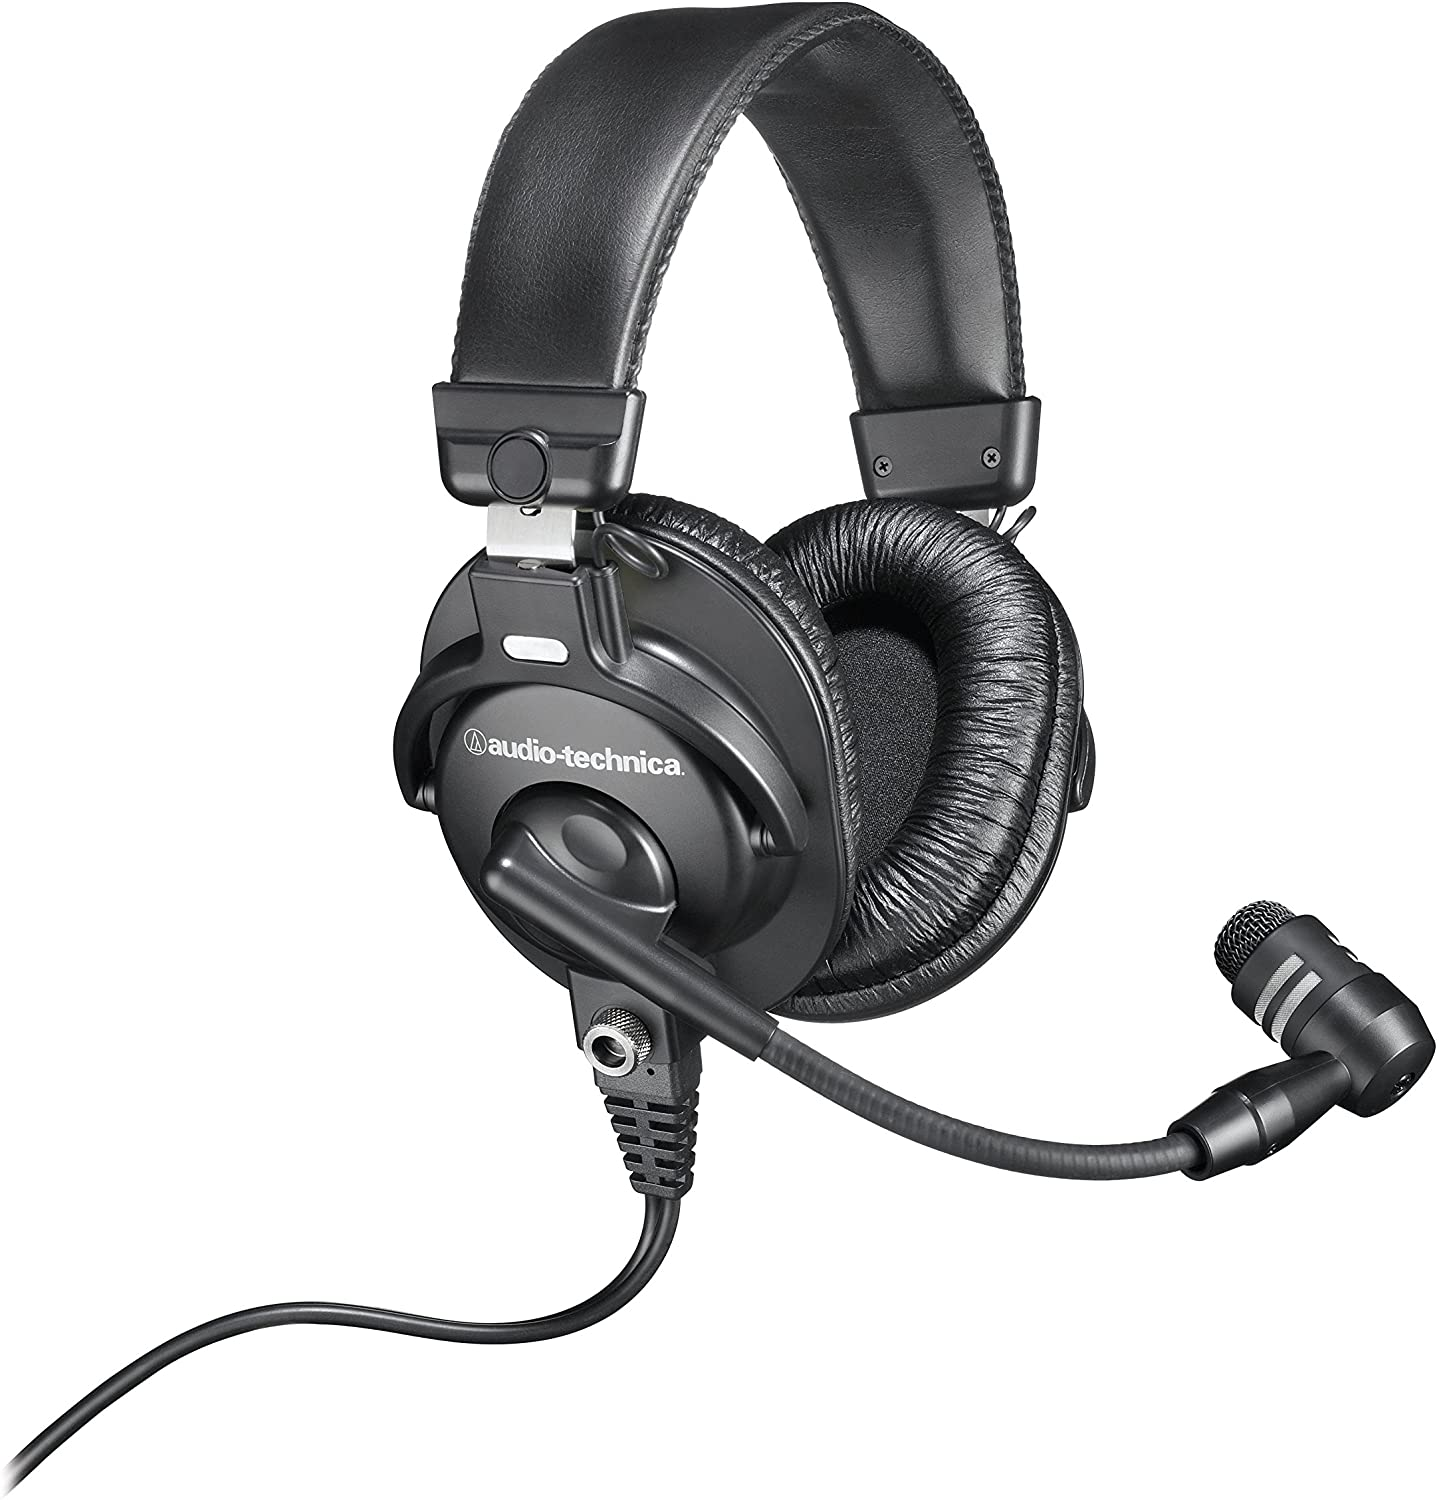 Audio-Technica BPHS1 from wired side view